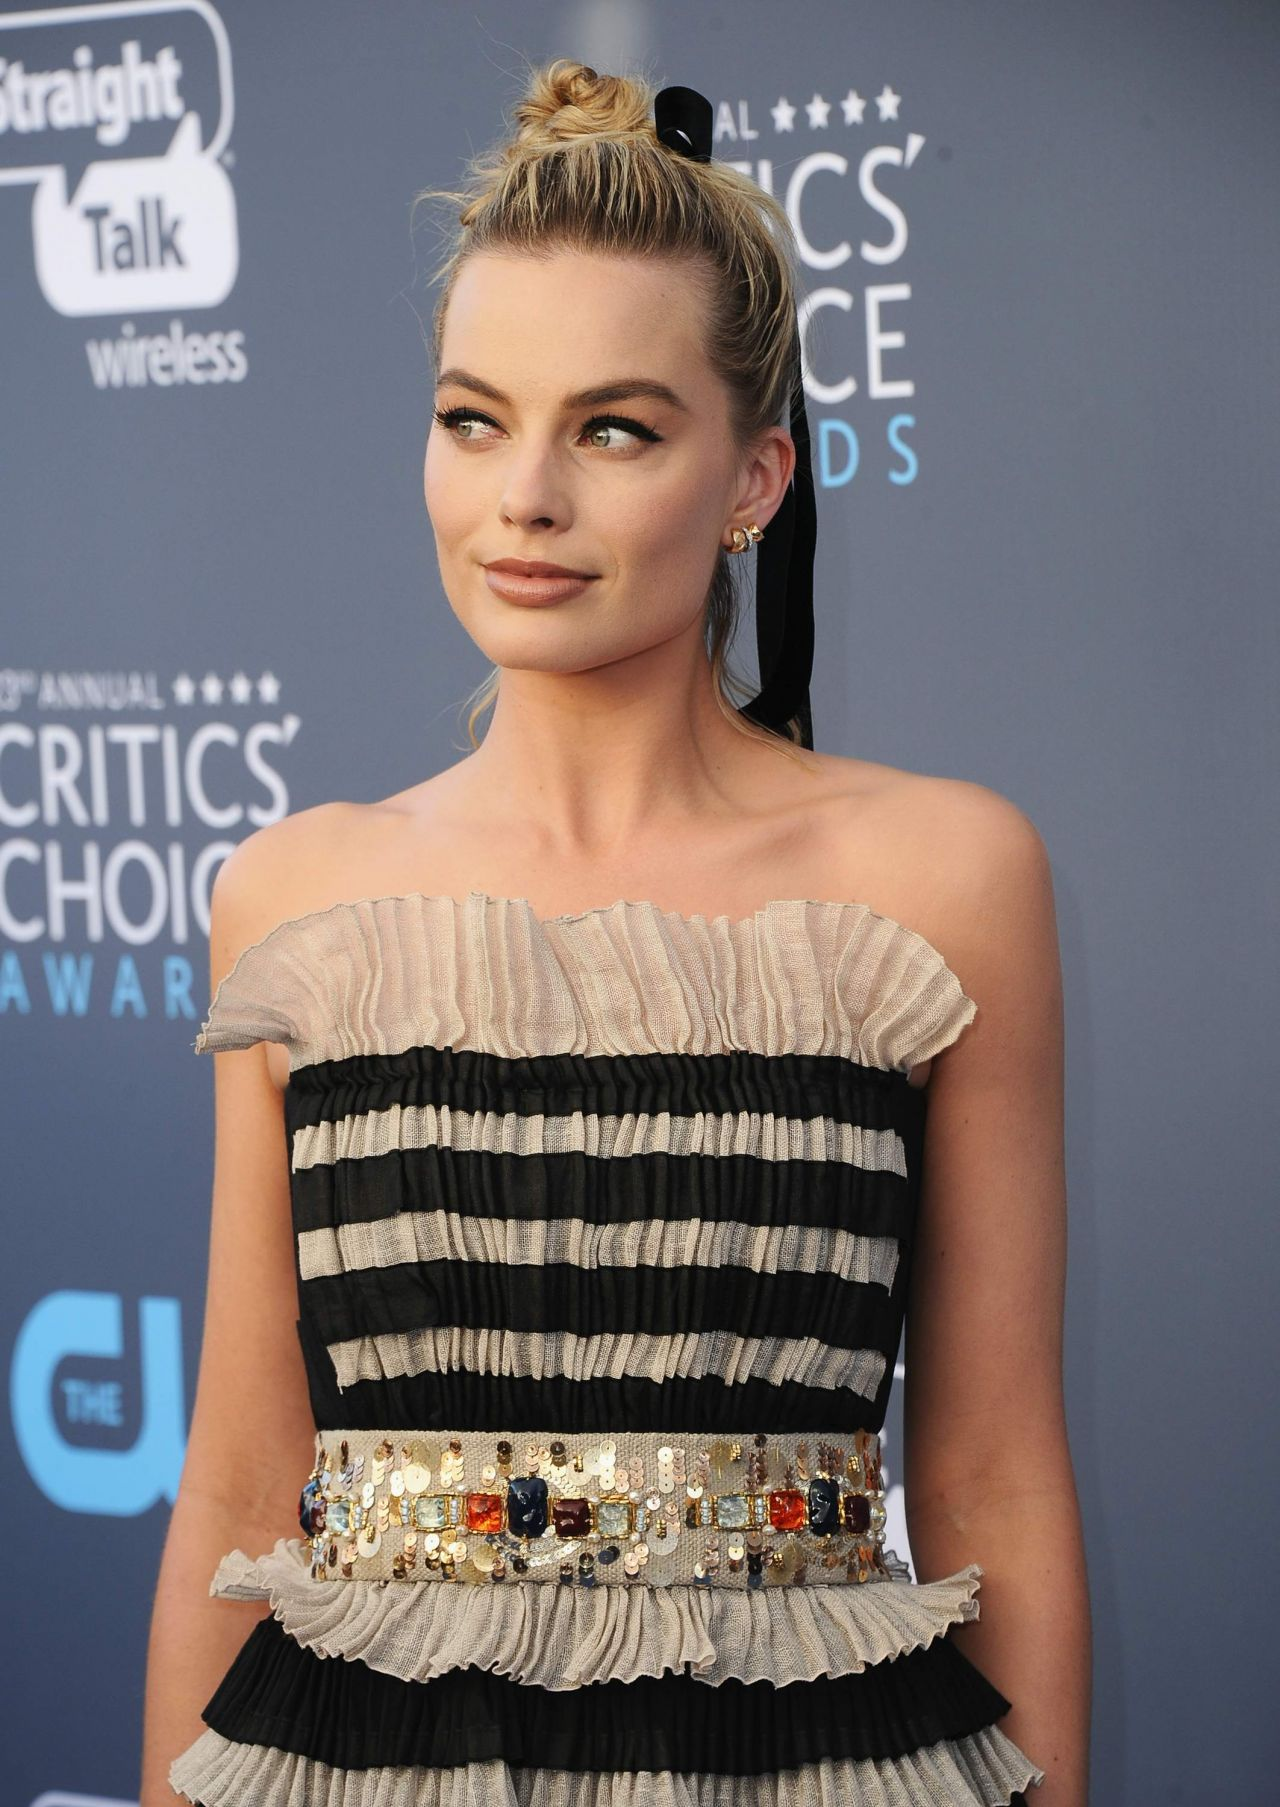 http://celebmafia.com/wp-content/uploads/2018/01/margot-robbie-2018-critics-choice-awards-3.jpg